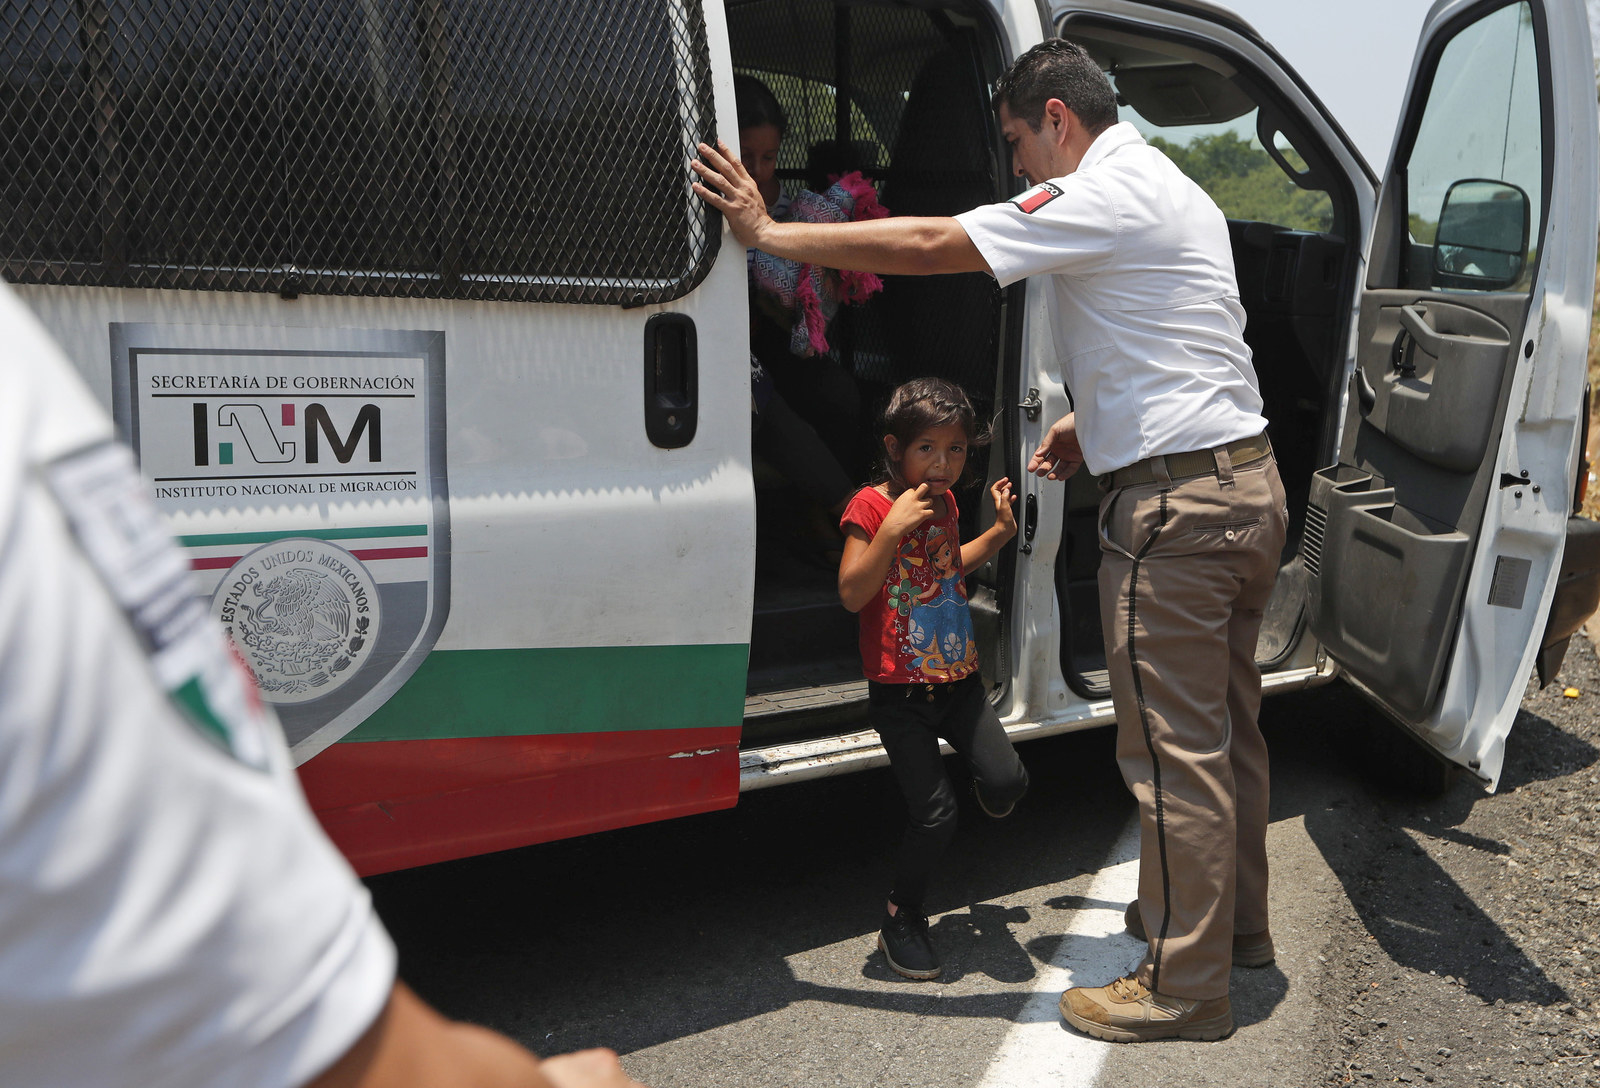 A Central American migrant child cries as she is asked to get into an immigration vehicle as she is detained on the highway to Pijijiapan, Mexico.